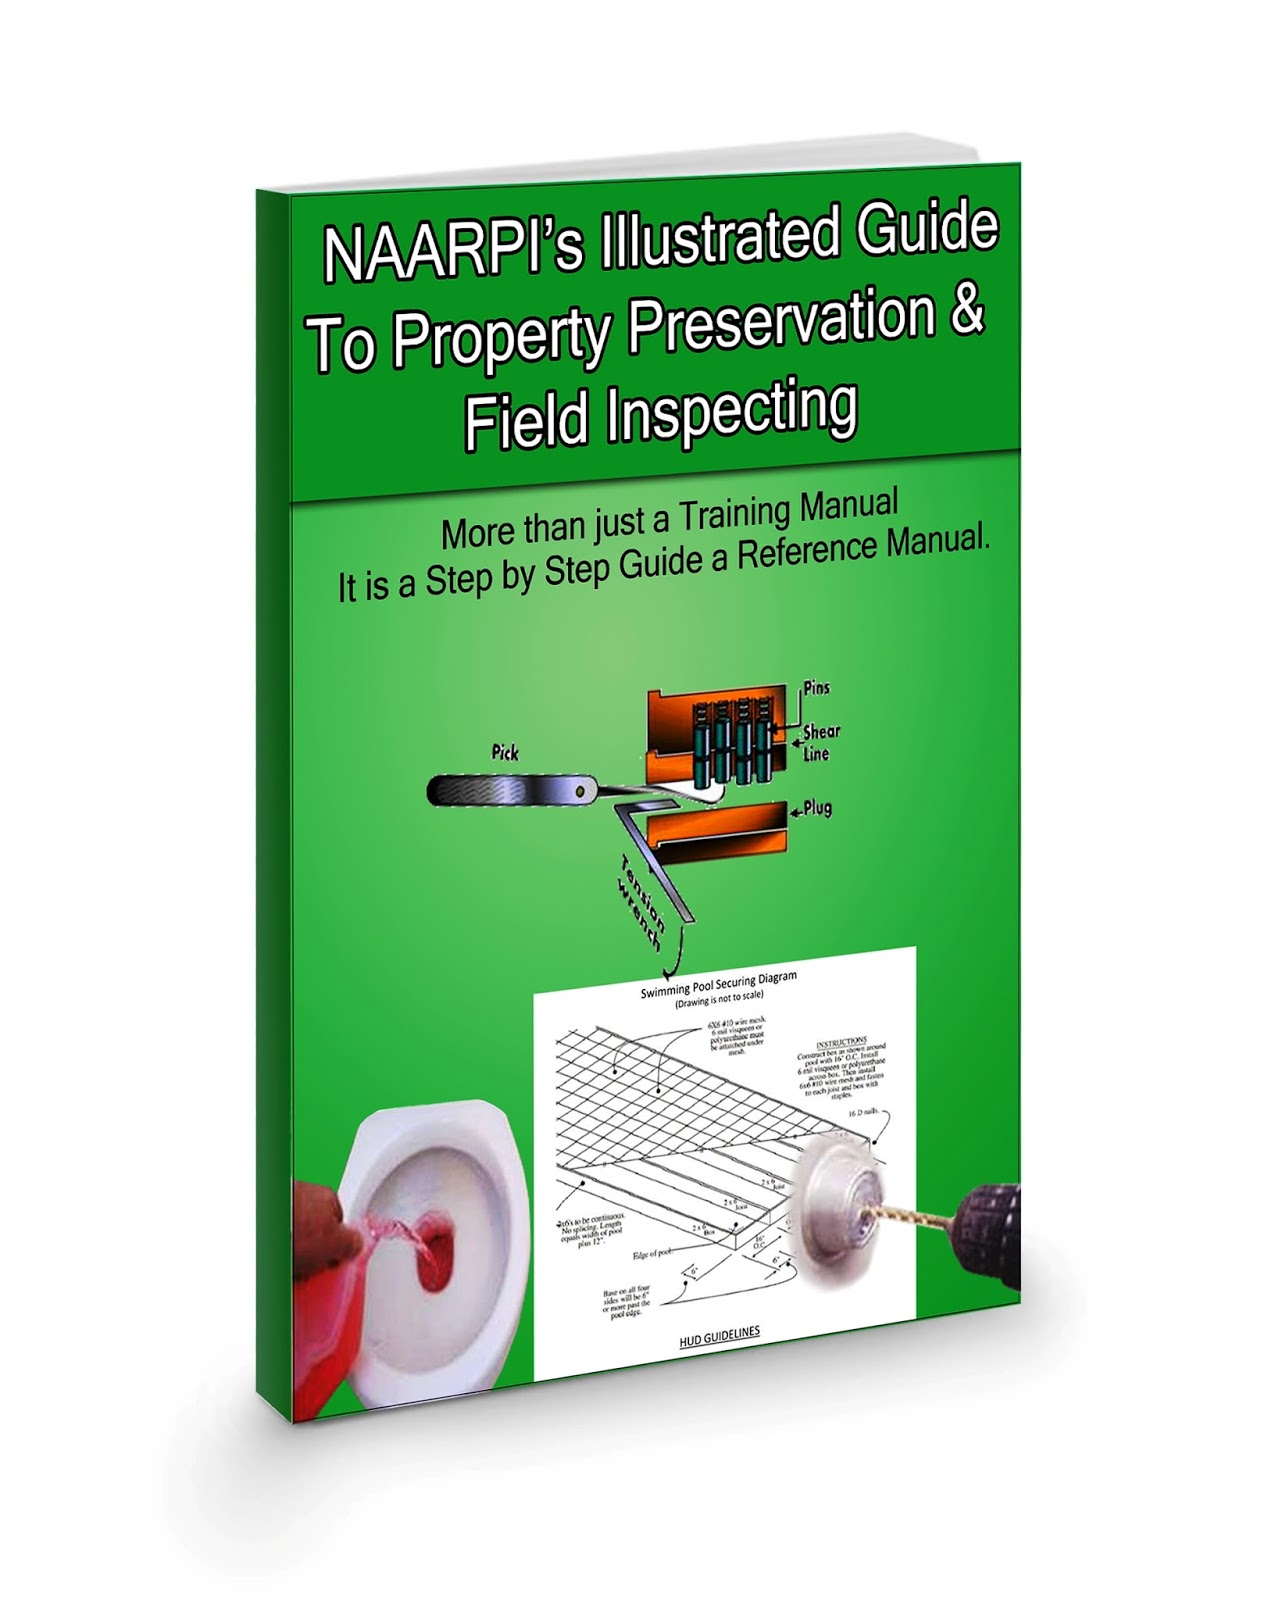 guide book to property preservation the property preservation bible rh naarpiguidetopropertypreservation blogspot com National Property Preservation Companies property preservation training manual